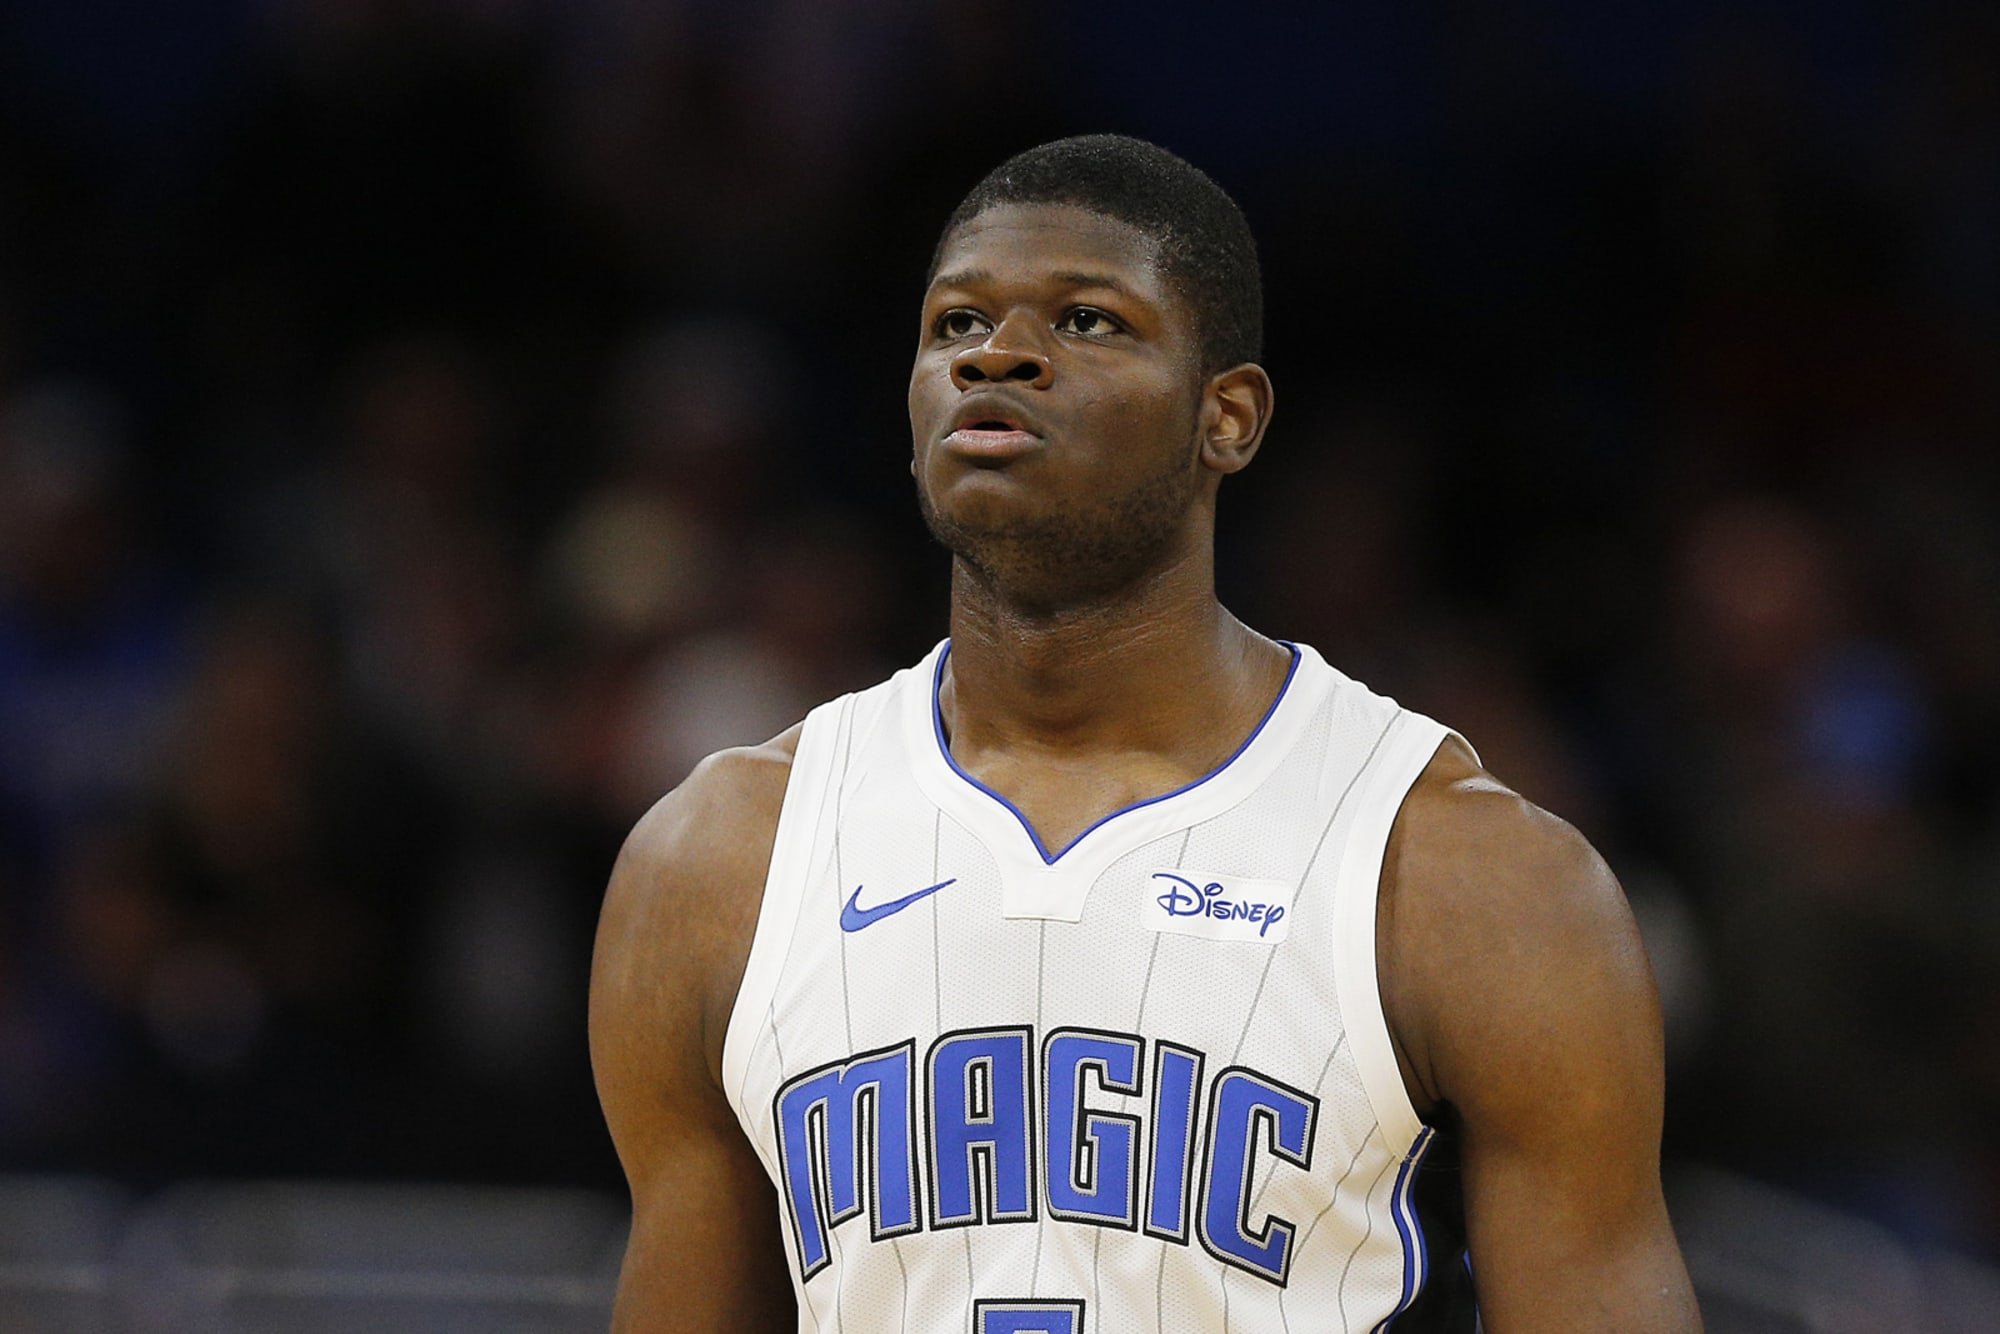 Orlando Magic center Mohamed Bamba's weight gain is real